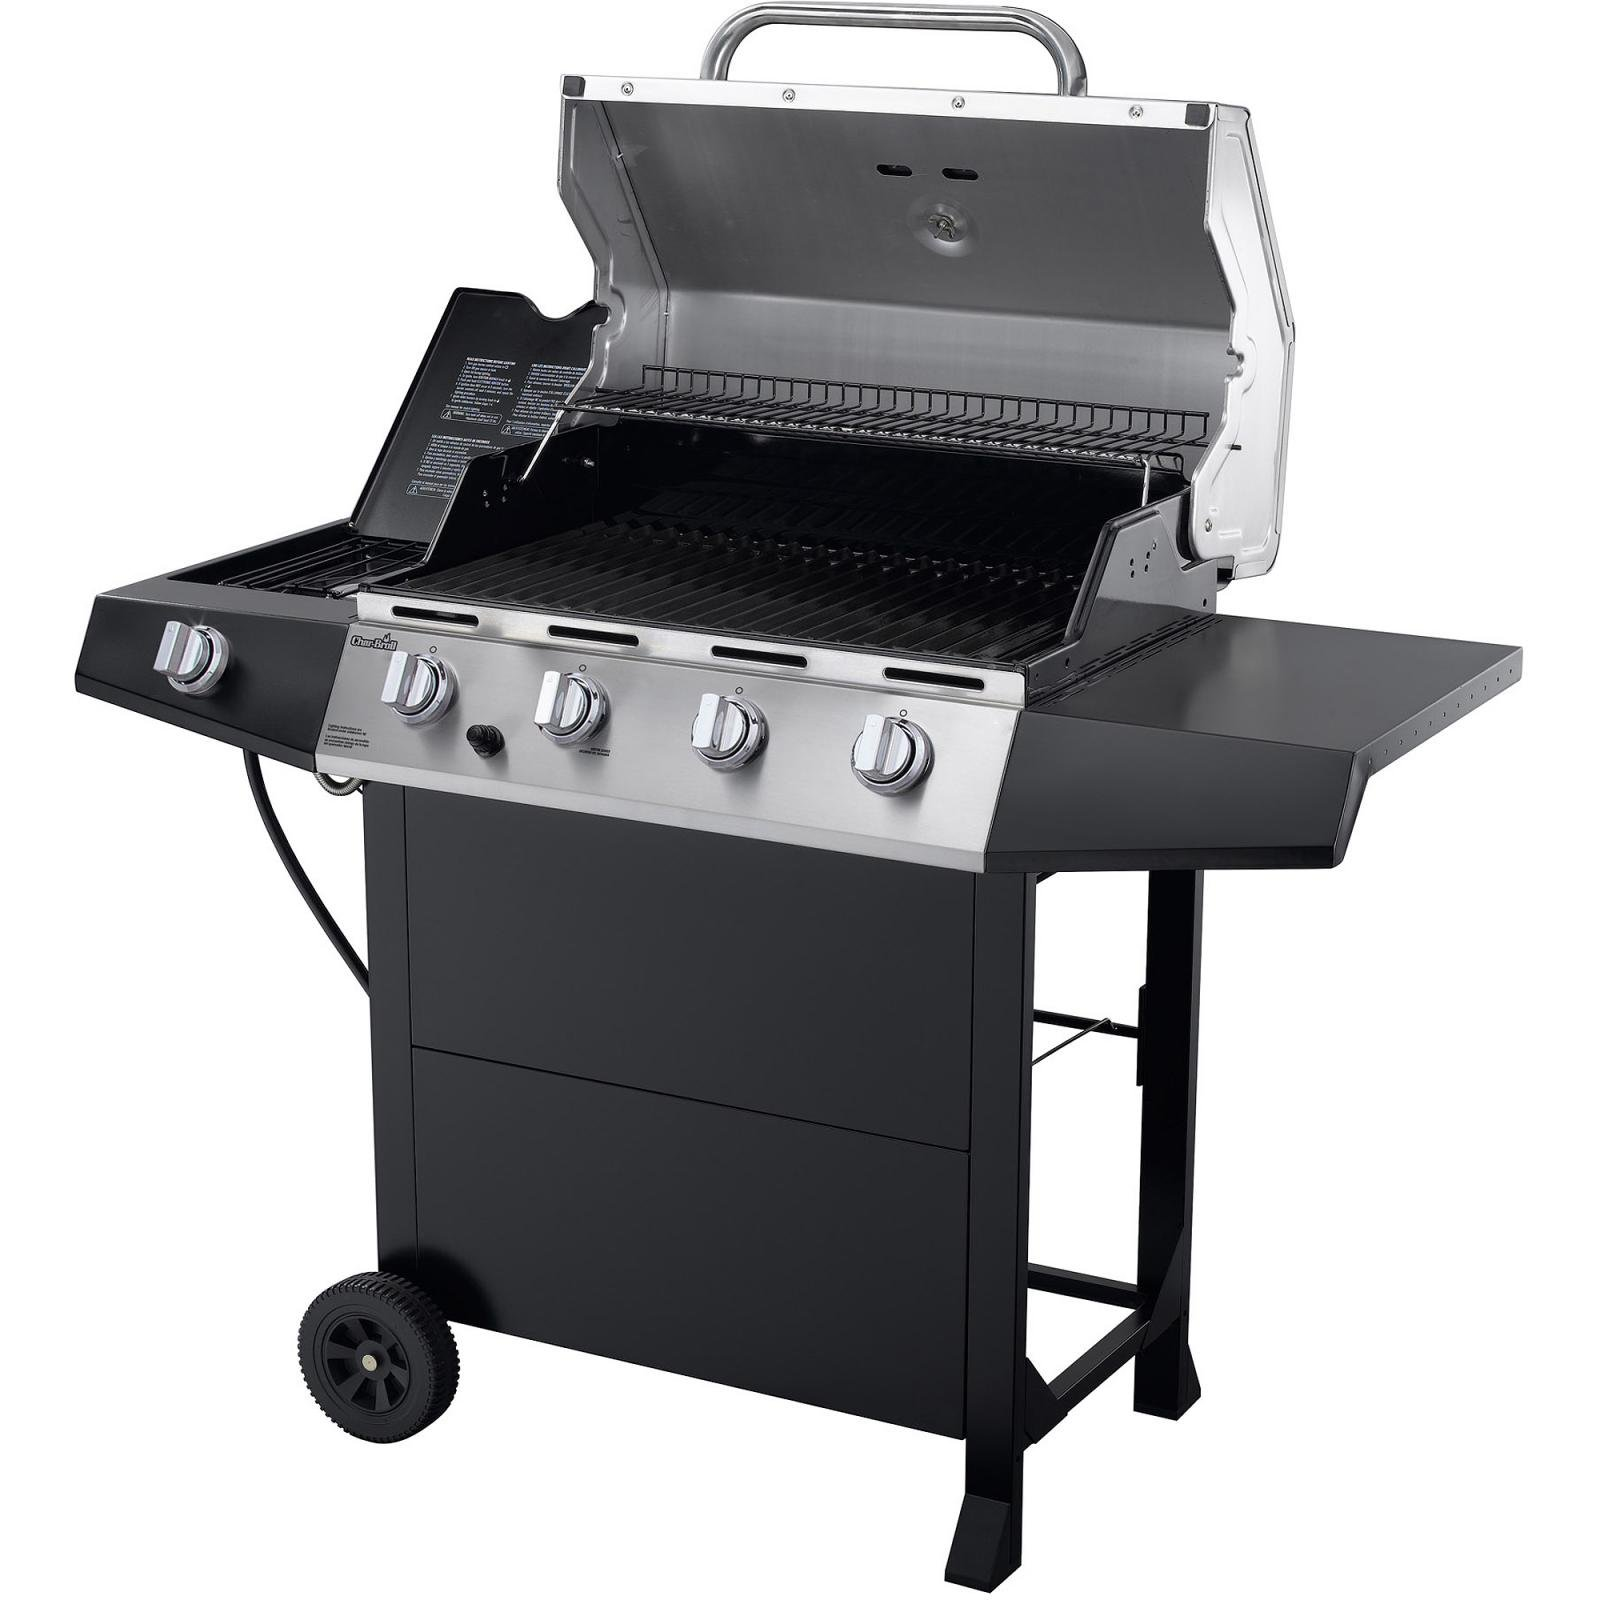 Char broil 4 burner gas grill bbq with side burner stainless steel barbeque new ebay - Grill for bbq stainless steel ...